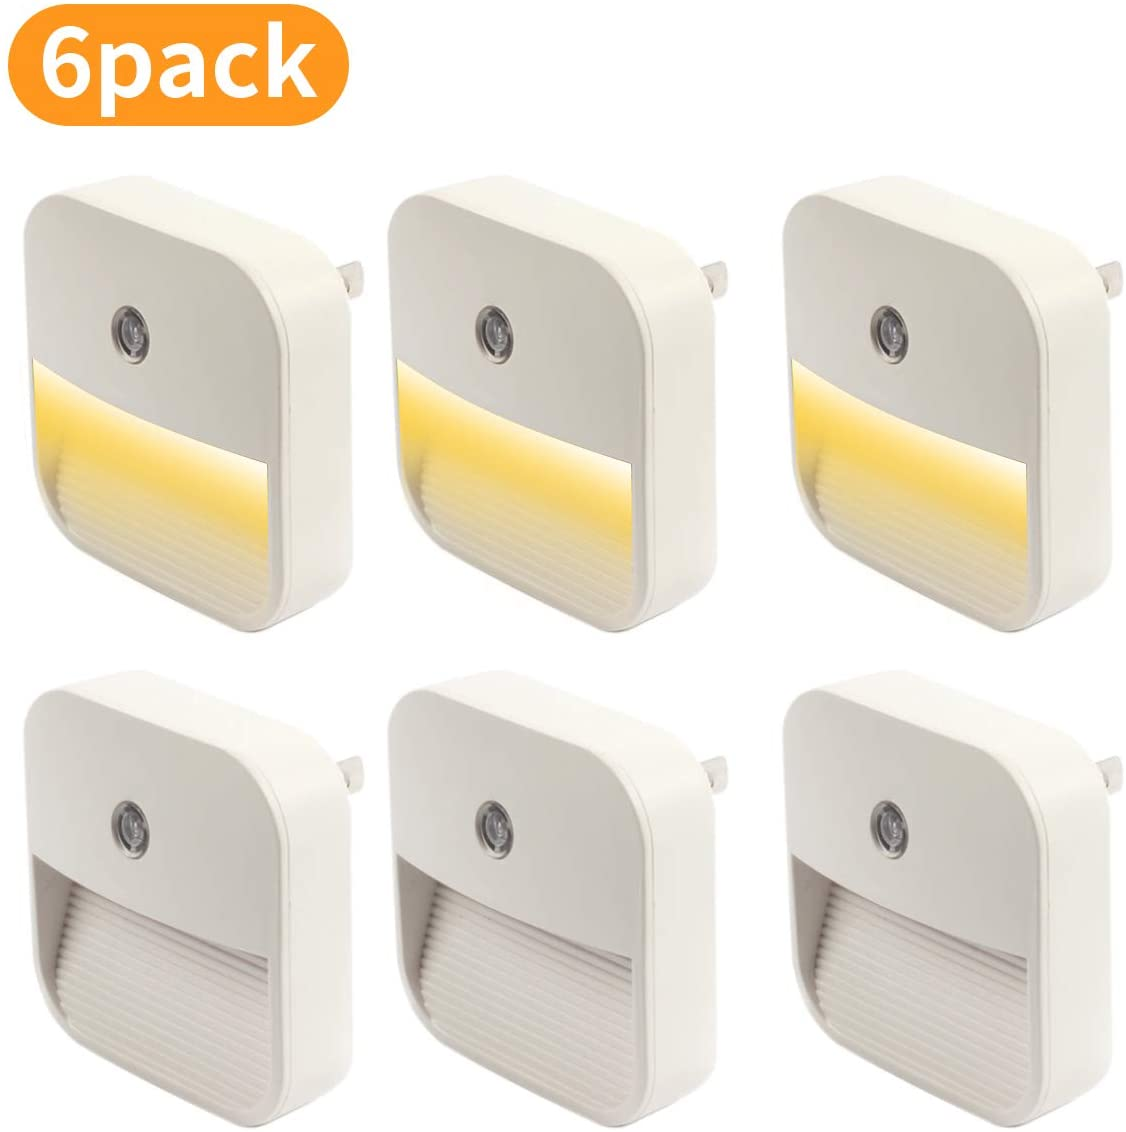 Alitade LED Night Lights Plug Into Wall, Dimmable 6pcs LED Light 3000K with Dusk-to-Dawn Sensor for Kids, Bedroom, Nursery, Bathroom, Kitchen, Hallway, Stairs, Pack of 6